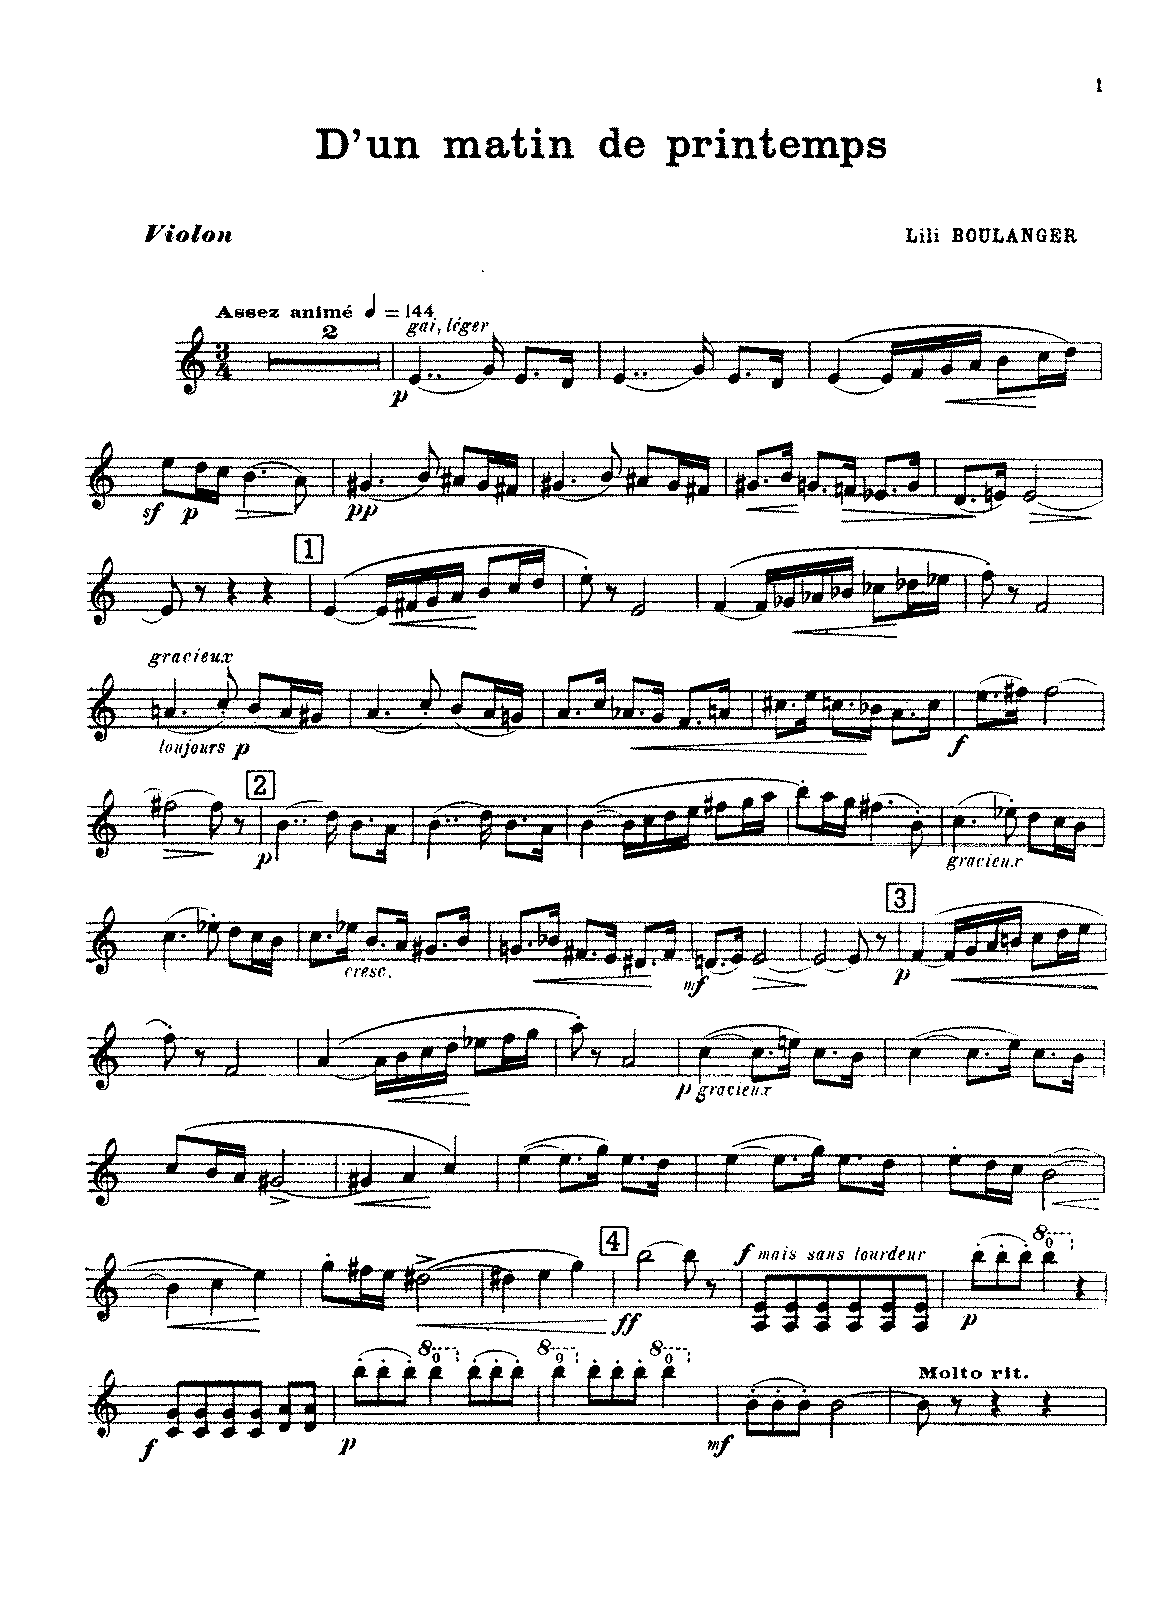 PMLP45120-Boulanger - D'un matin de printemps (flute or violin and piano).pdf